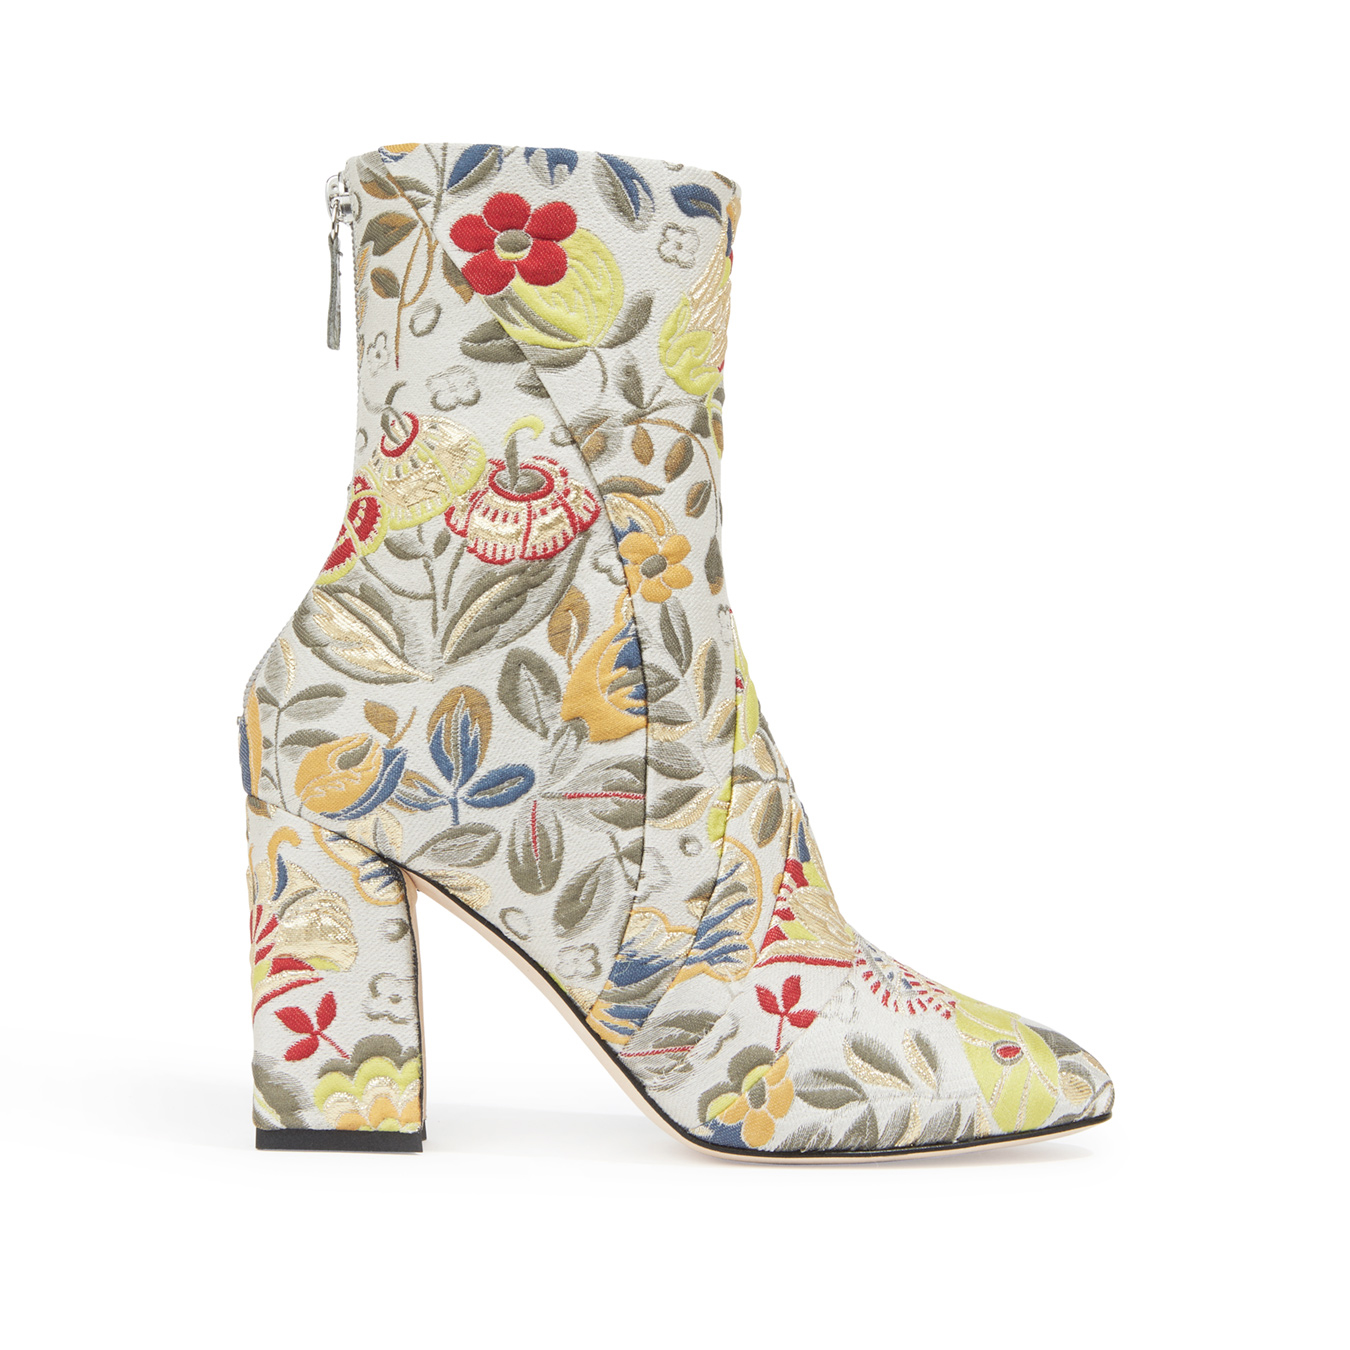 Zac Posen Embroidered Boots